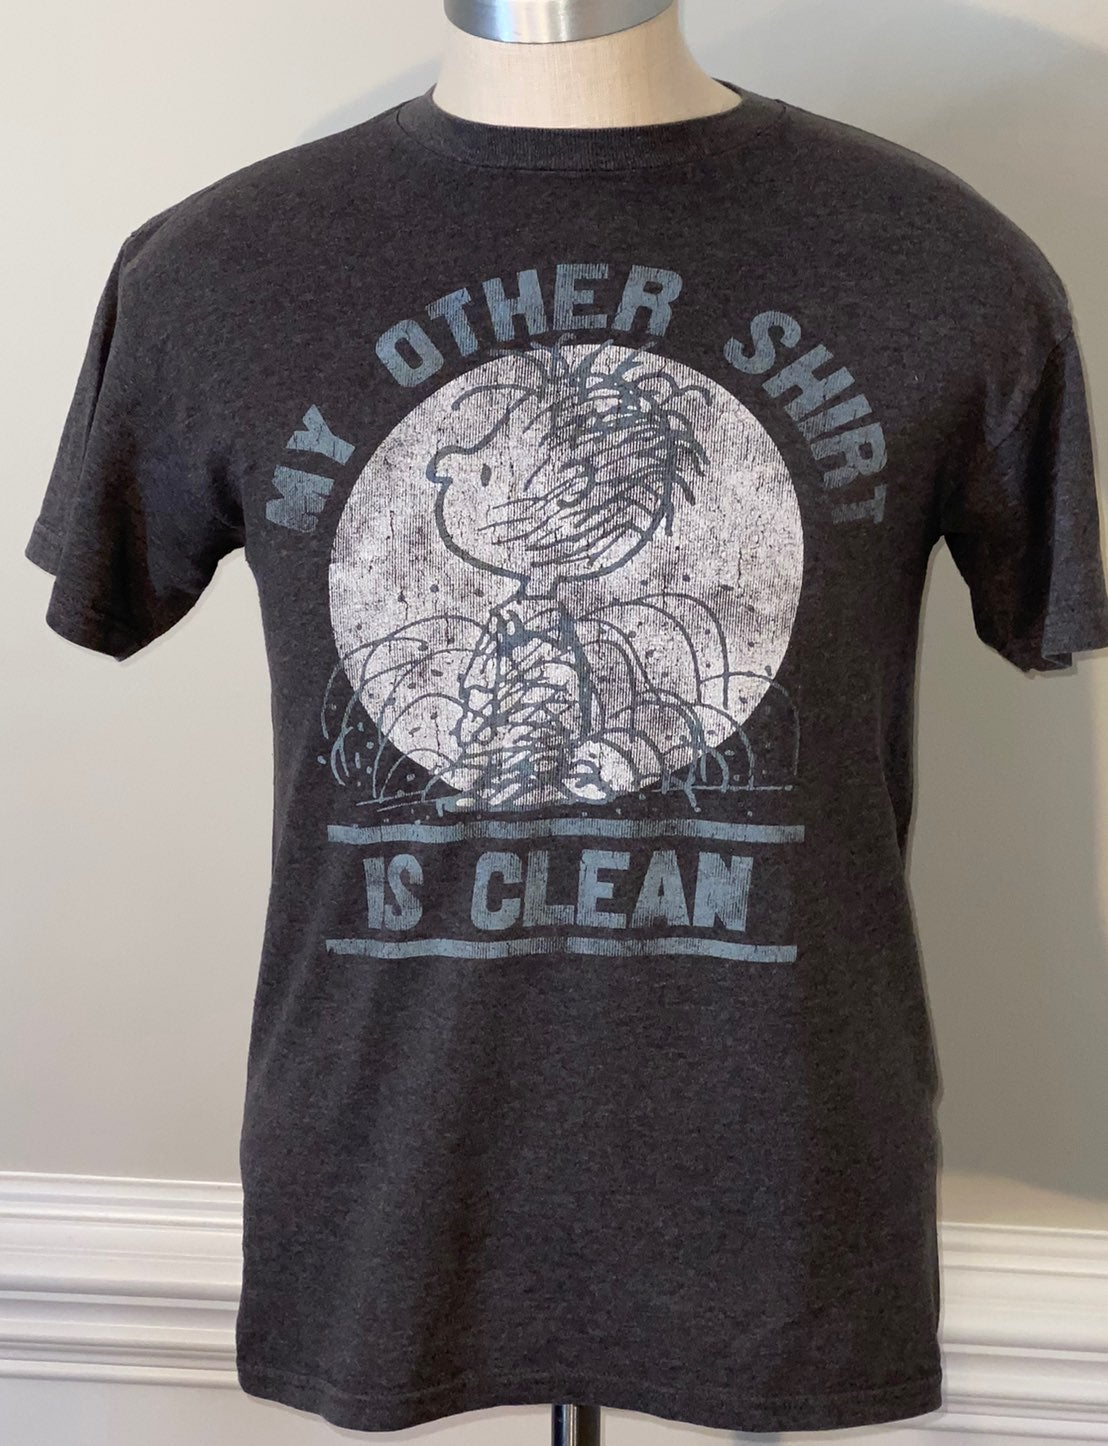 MY OTHER SHIRT IS CLEAN t-shirt Pig Pen